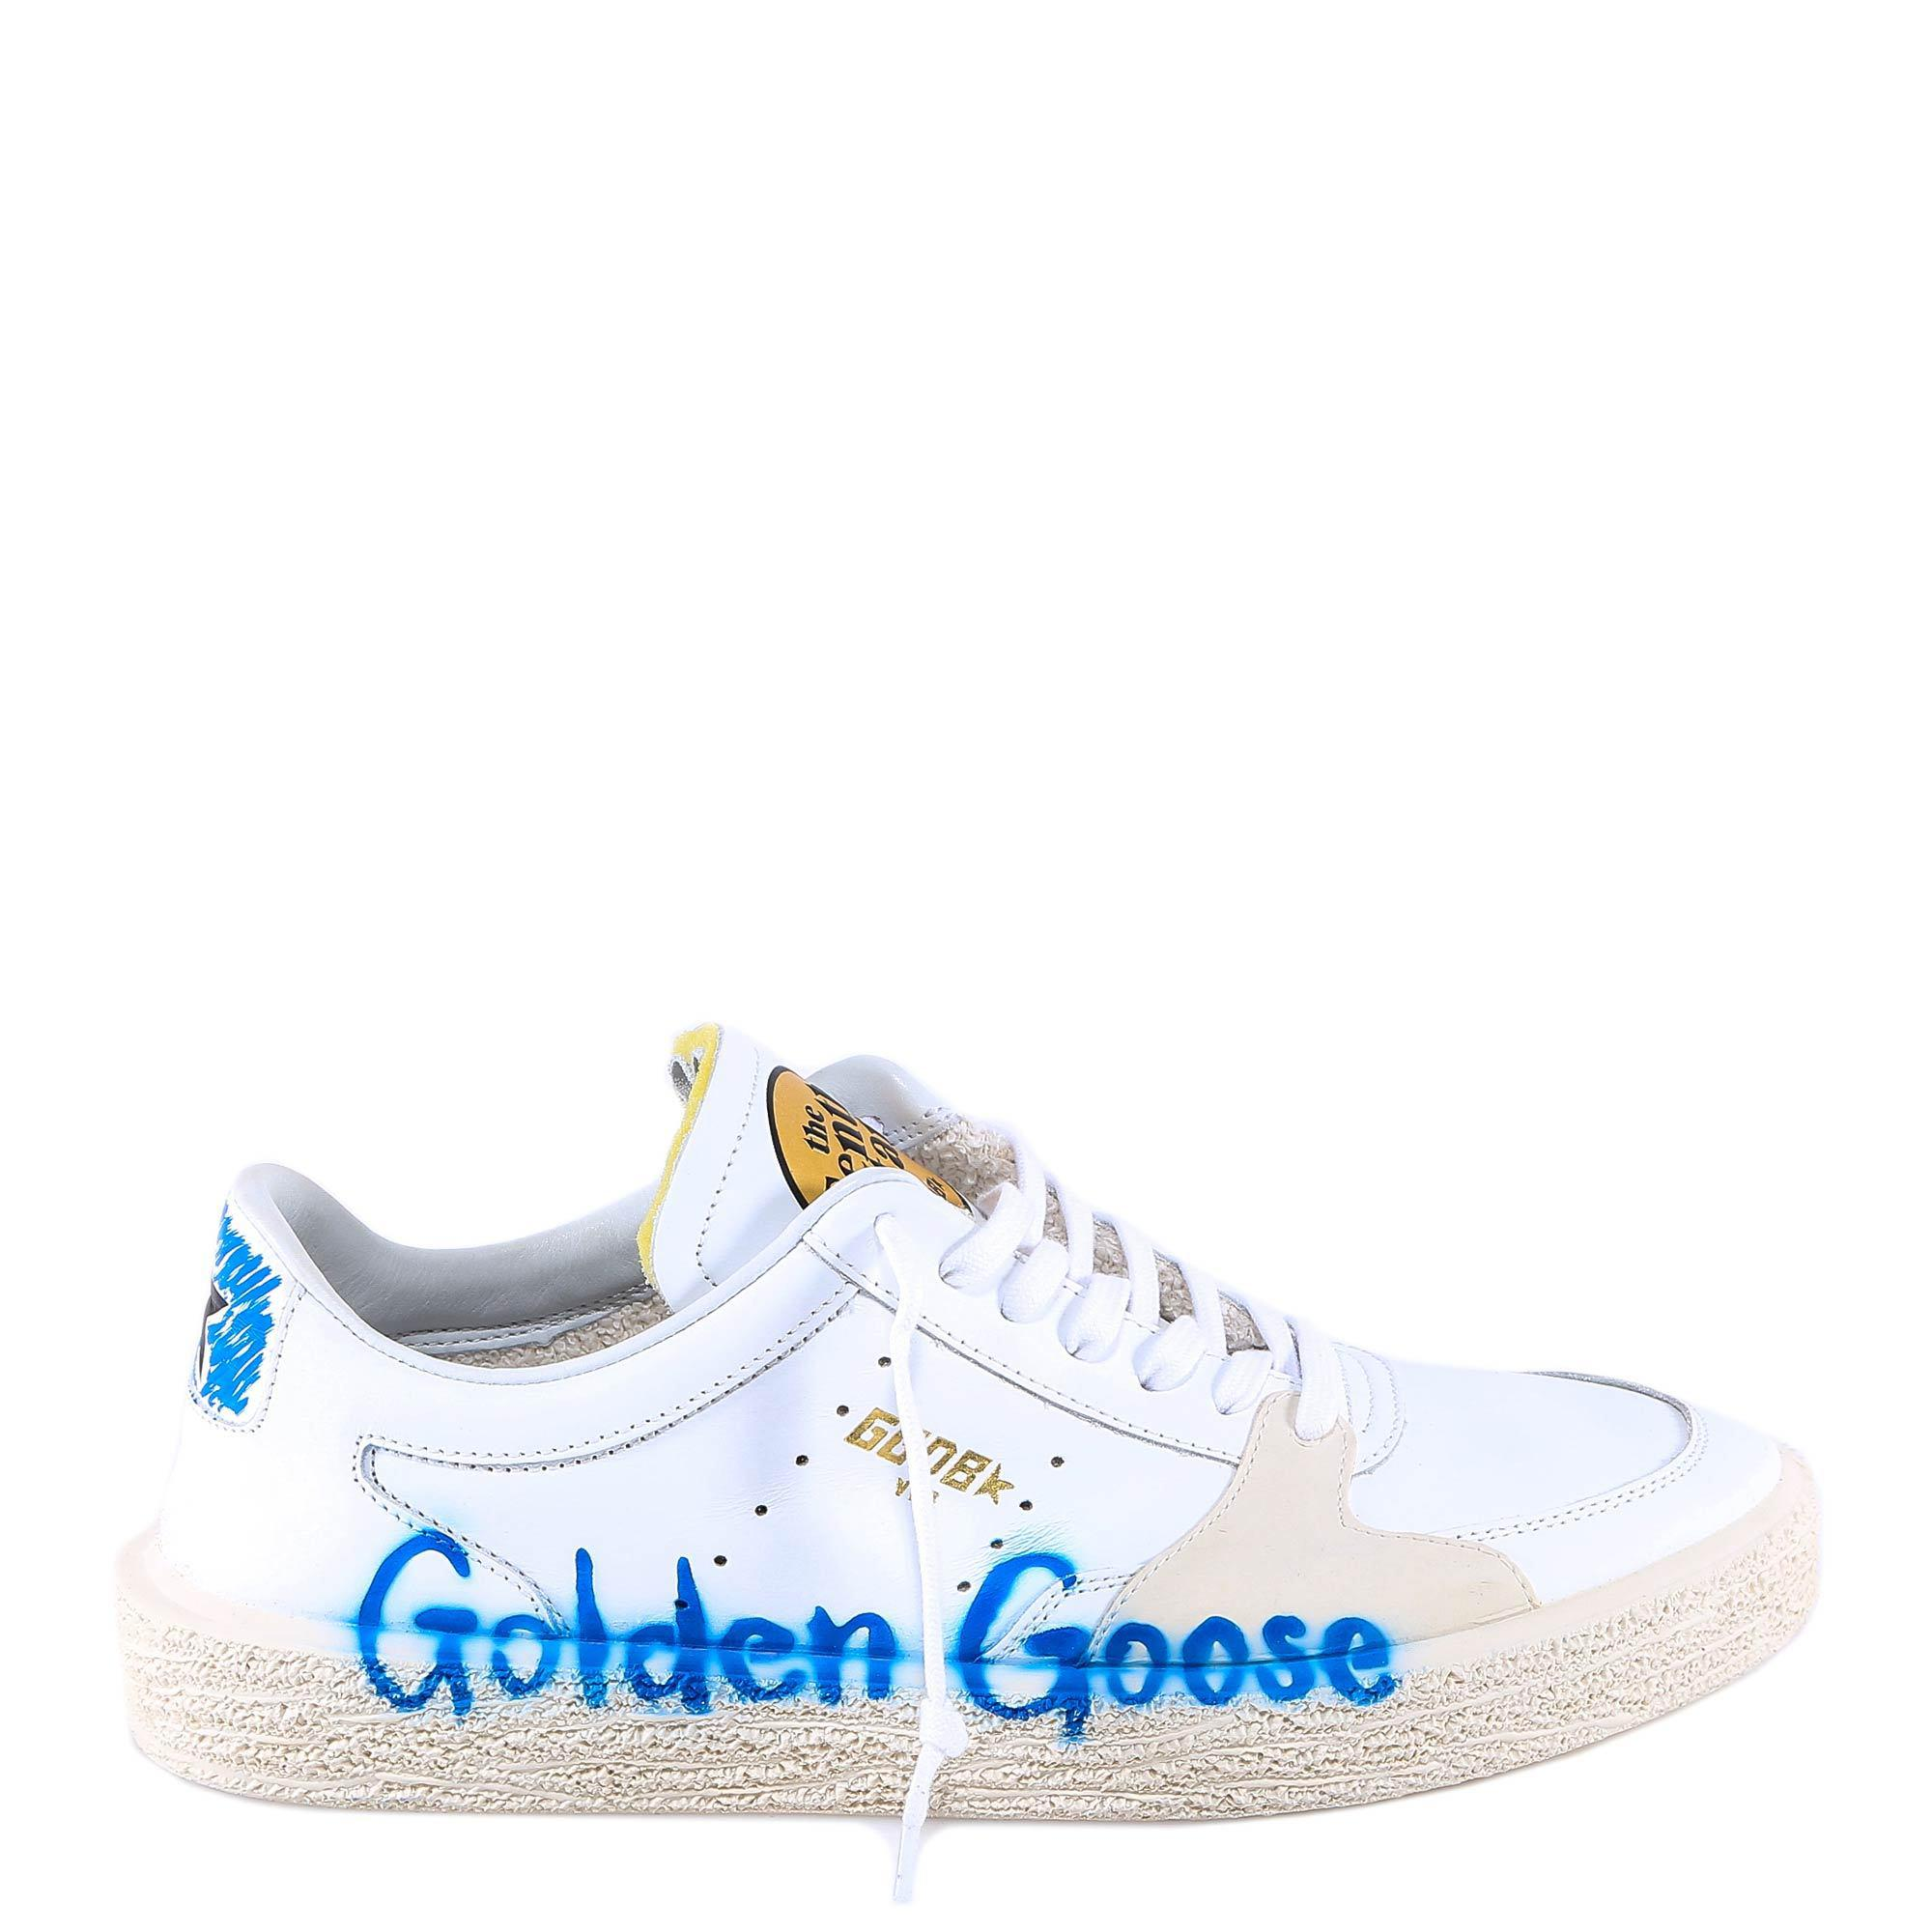 7bd76492f1166 Golden Goose Deluxe Brand Tenth Star Sneakers in White for Men - Lyst